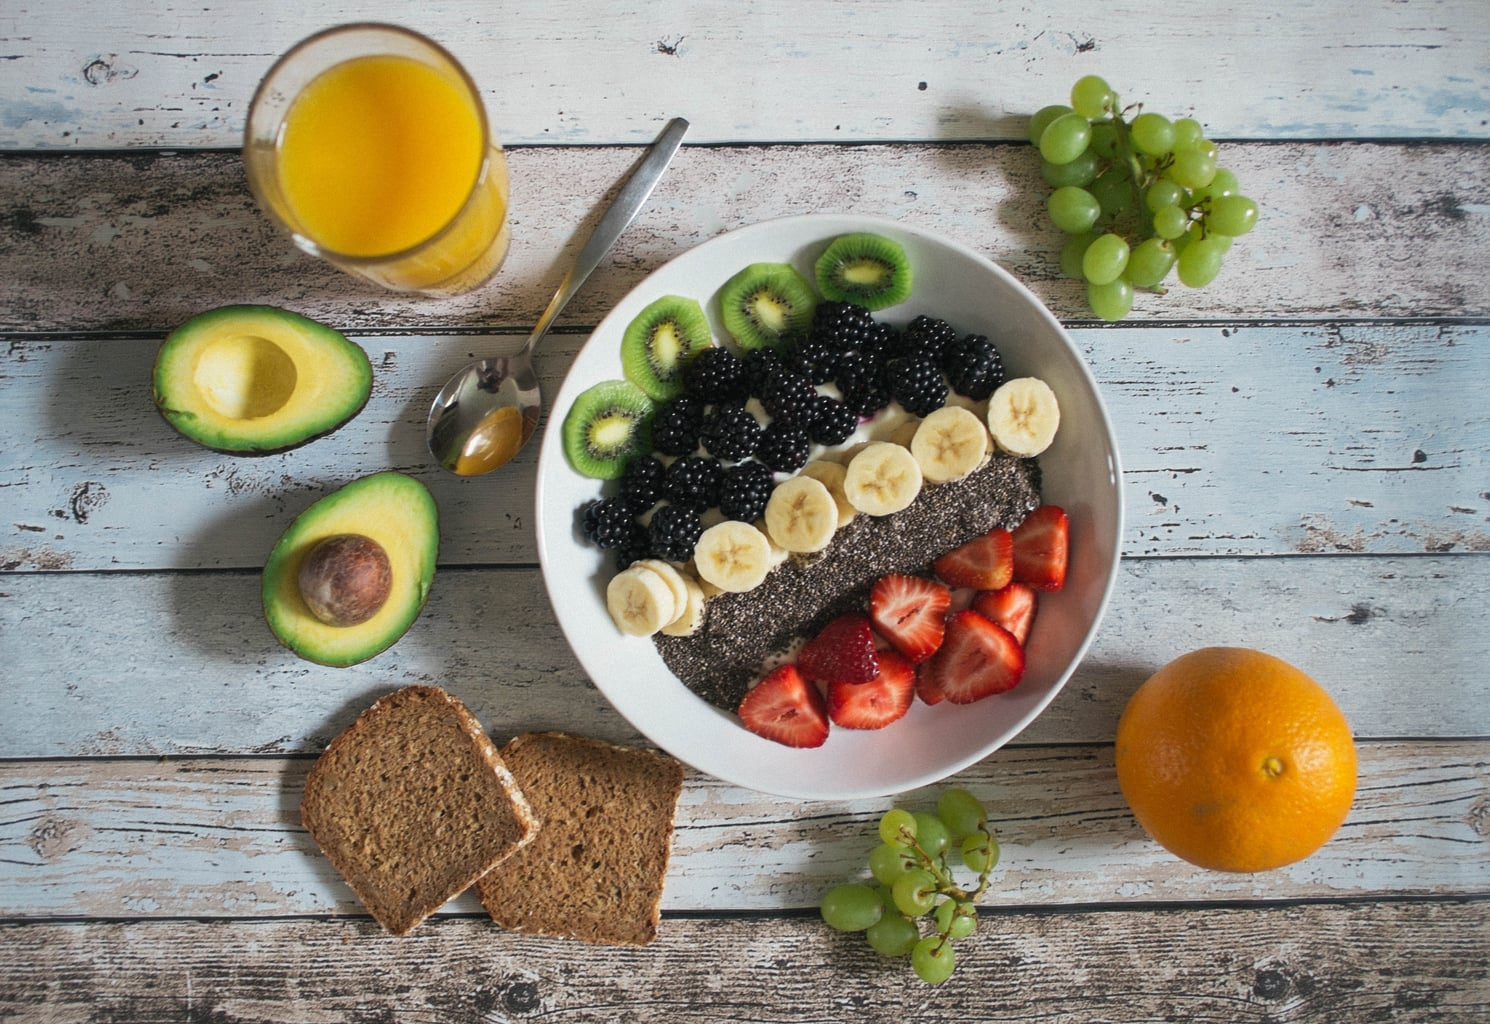 variety of fruits (kiwi, grapes, avocado, orange banana, strawberry) in a bowl with orange juice and bread on a wooden table